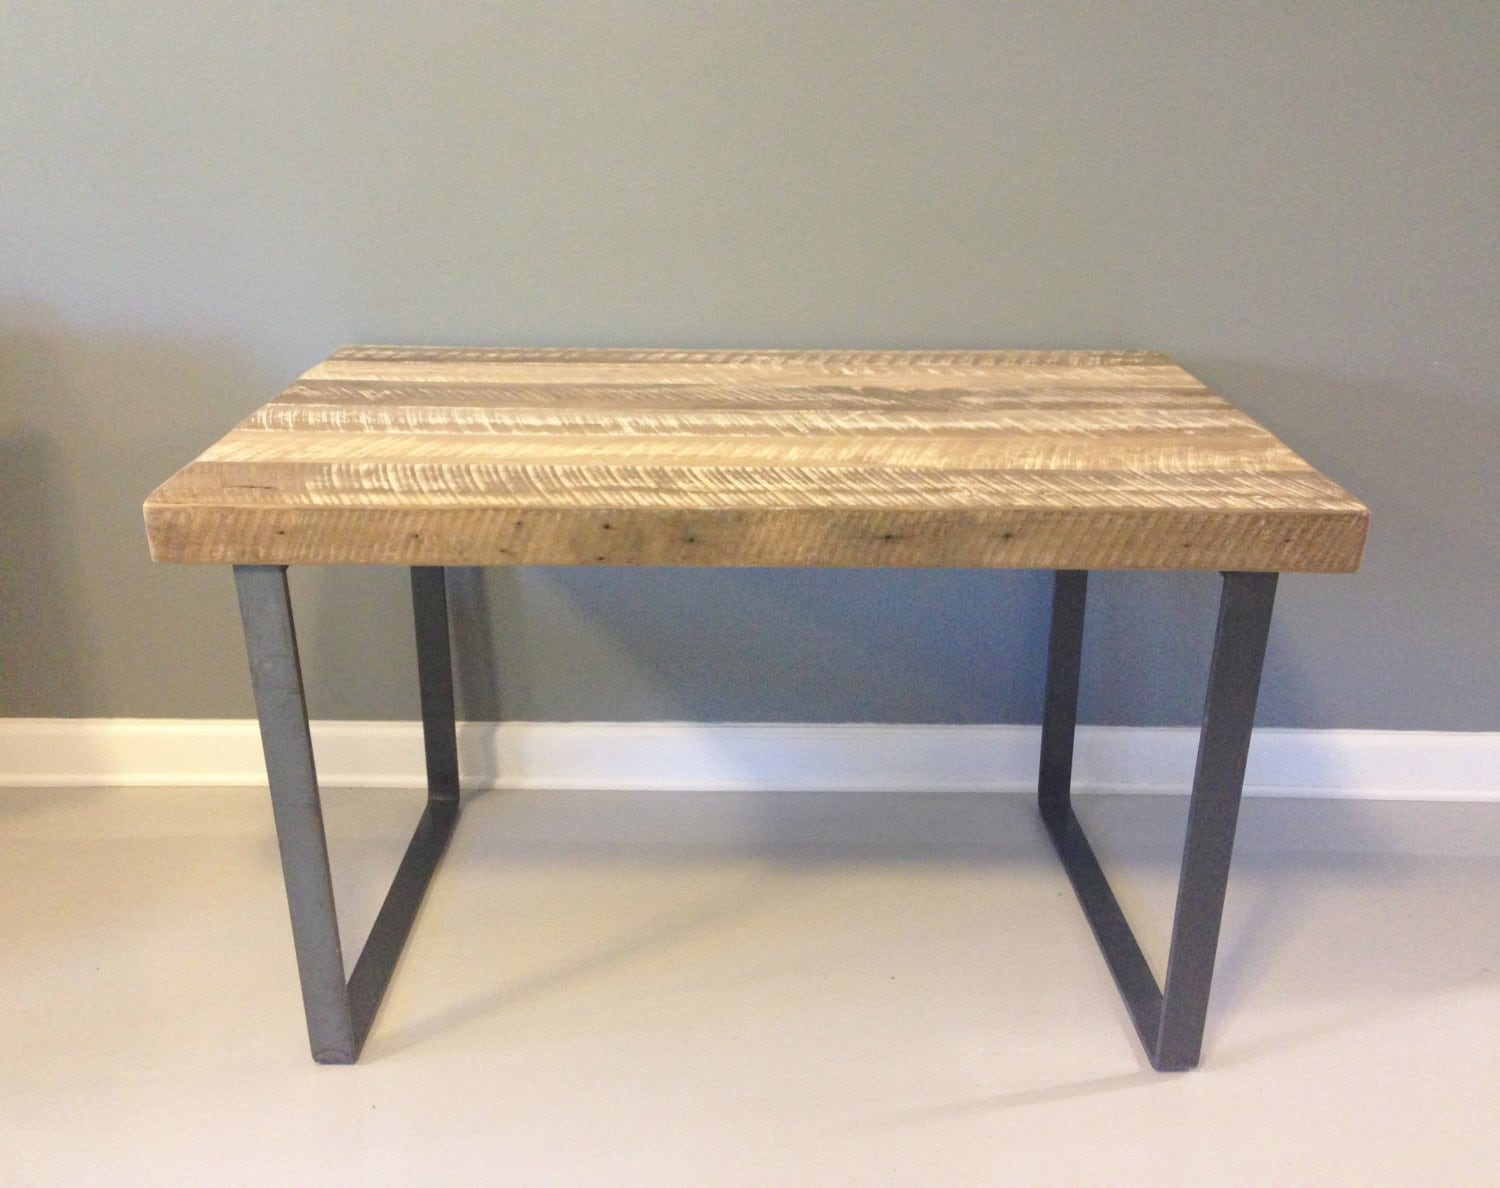 Reclaimed wood table dining table kitchen table by dendroco for Wooden kitchen table